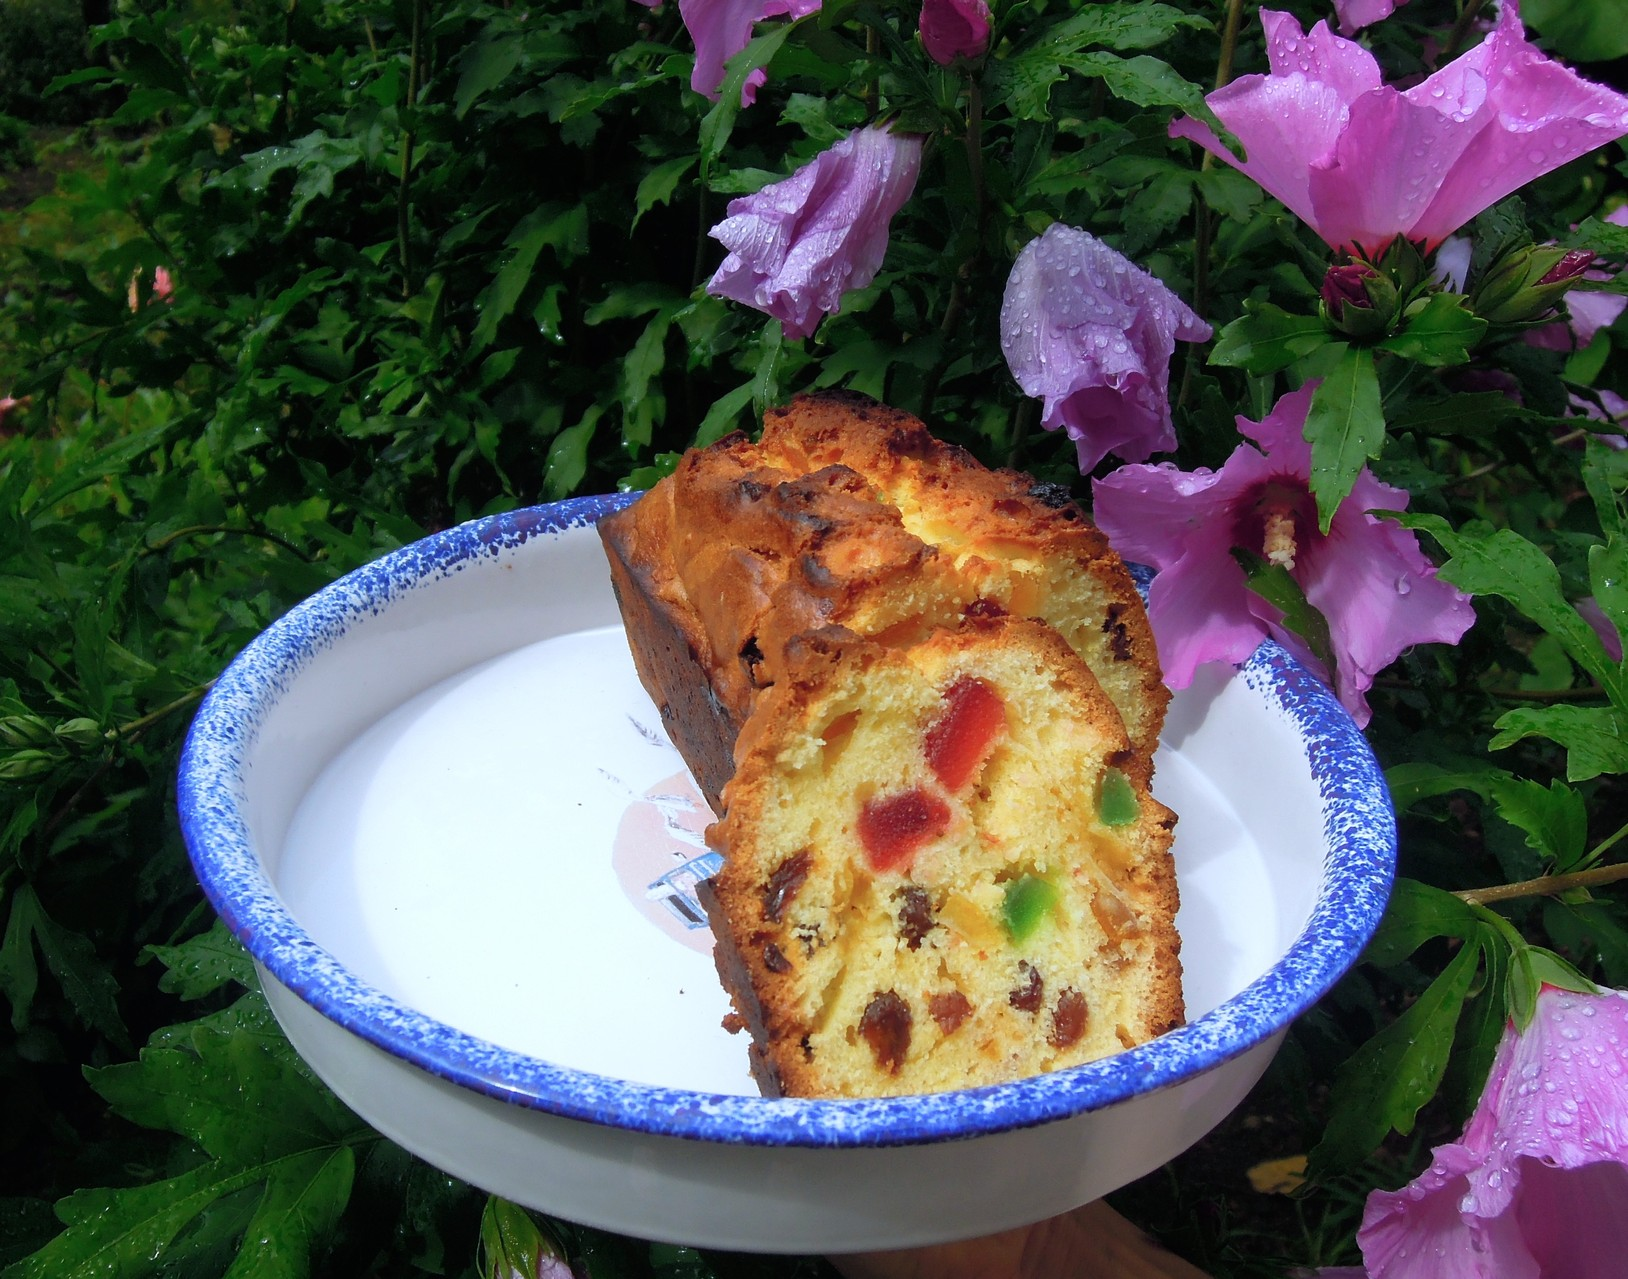 Cake with raisins and candied fruits